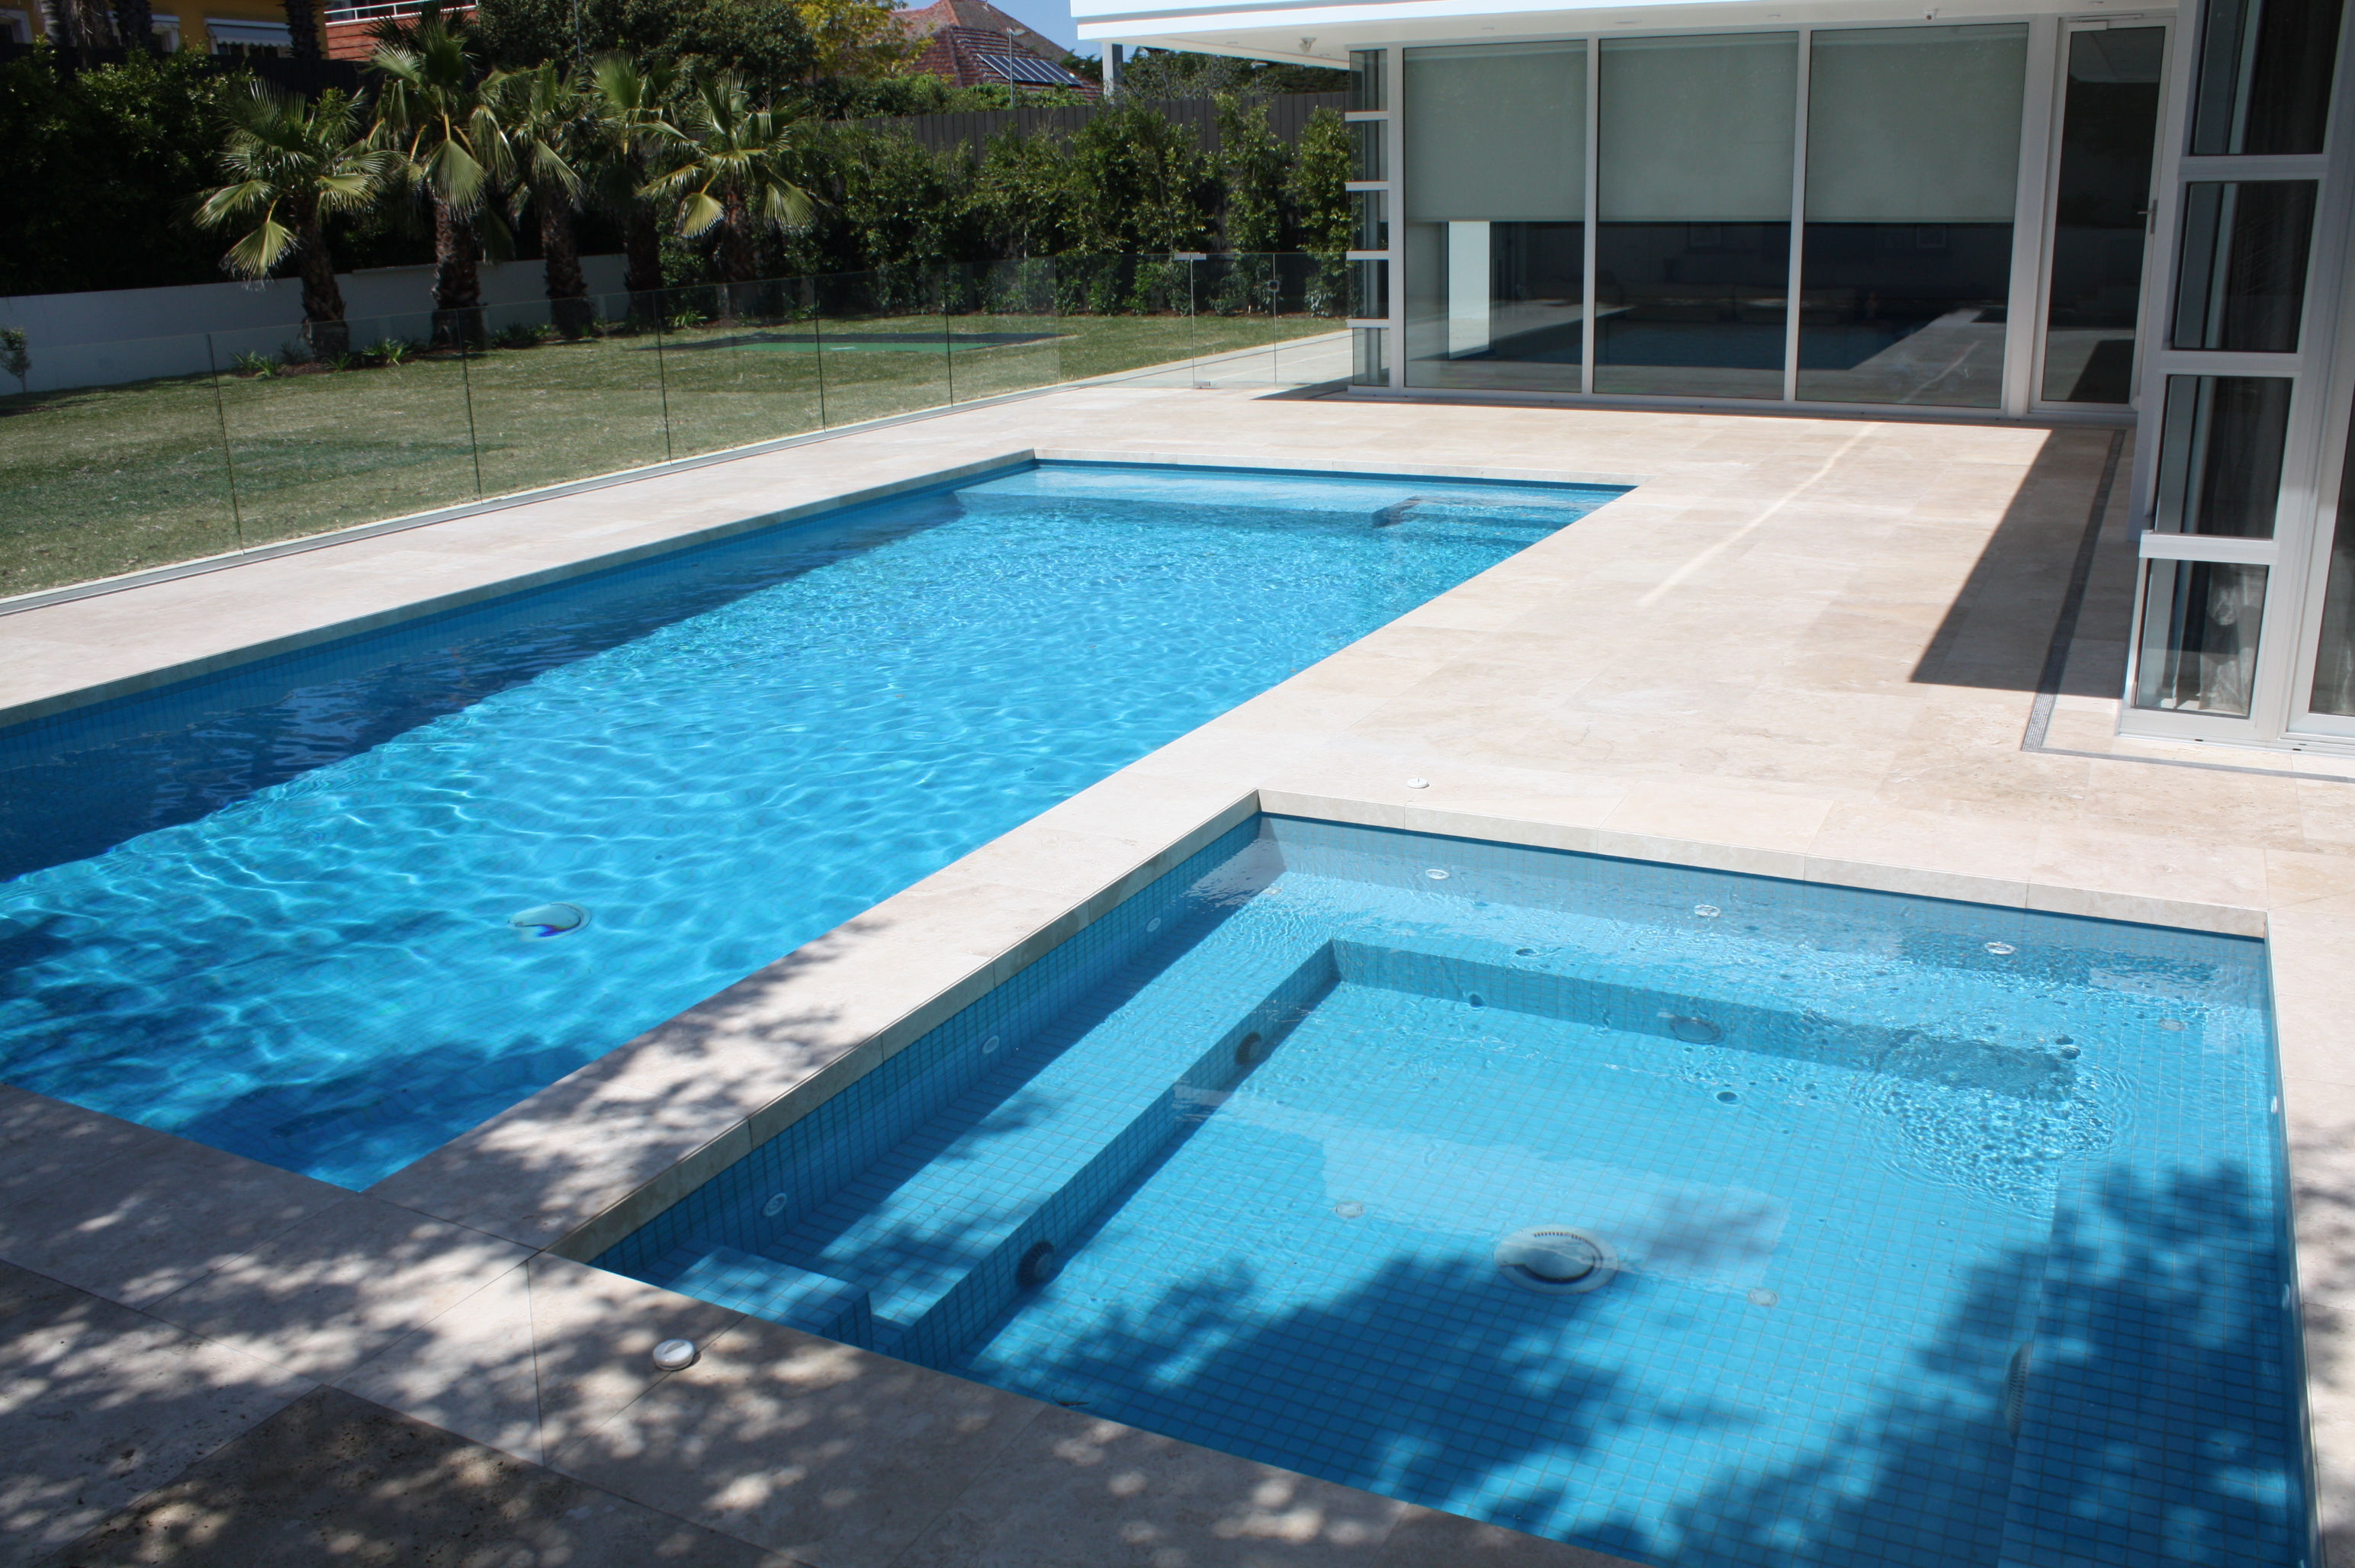 Pool design concrete pools melbourne for Design of swimming pool concrete